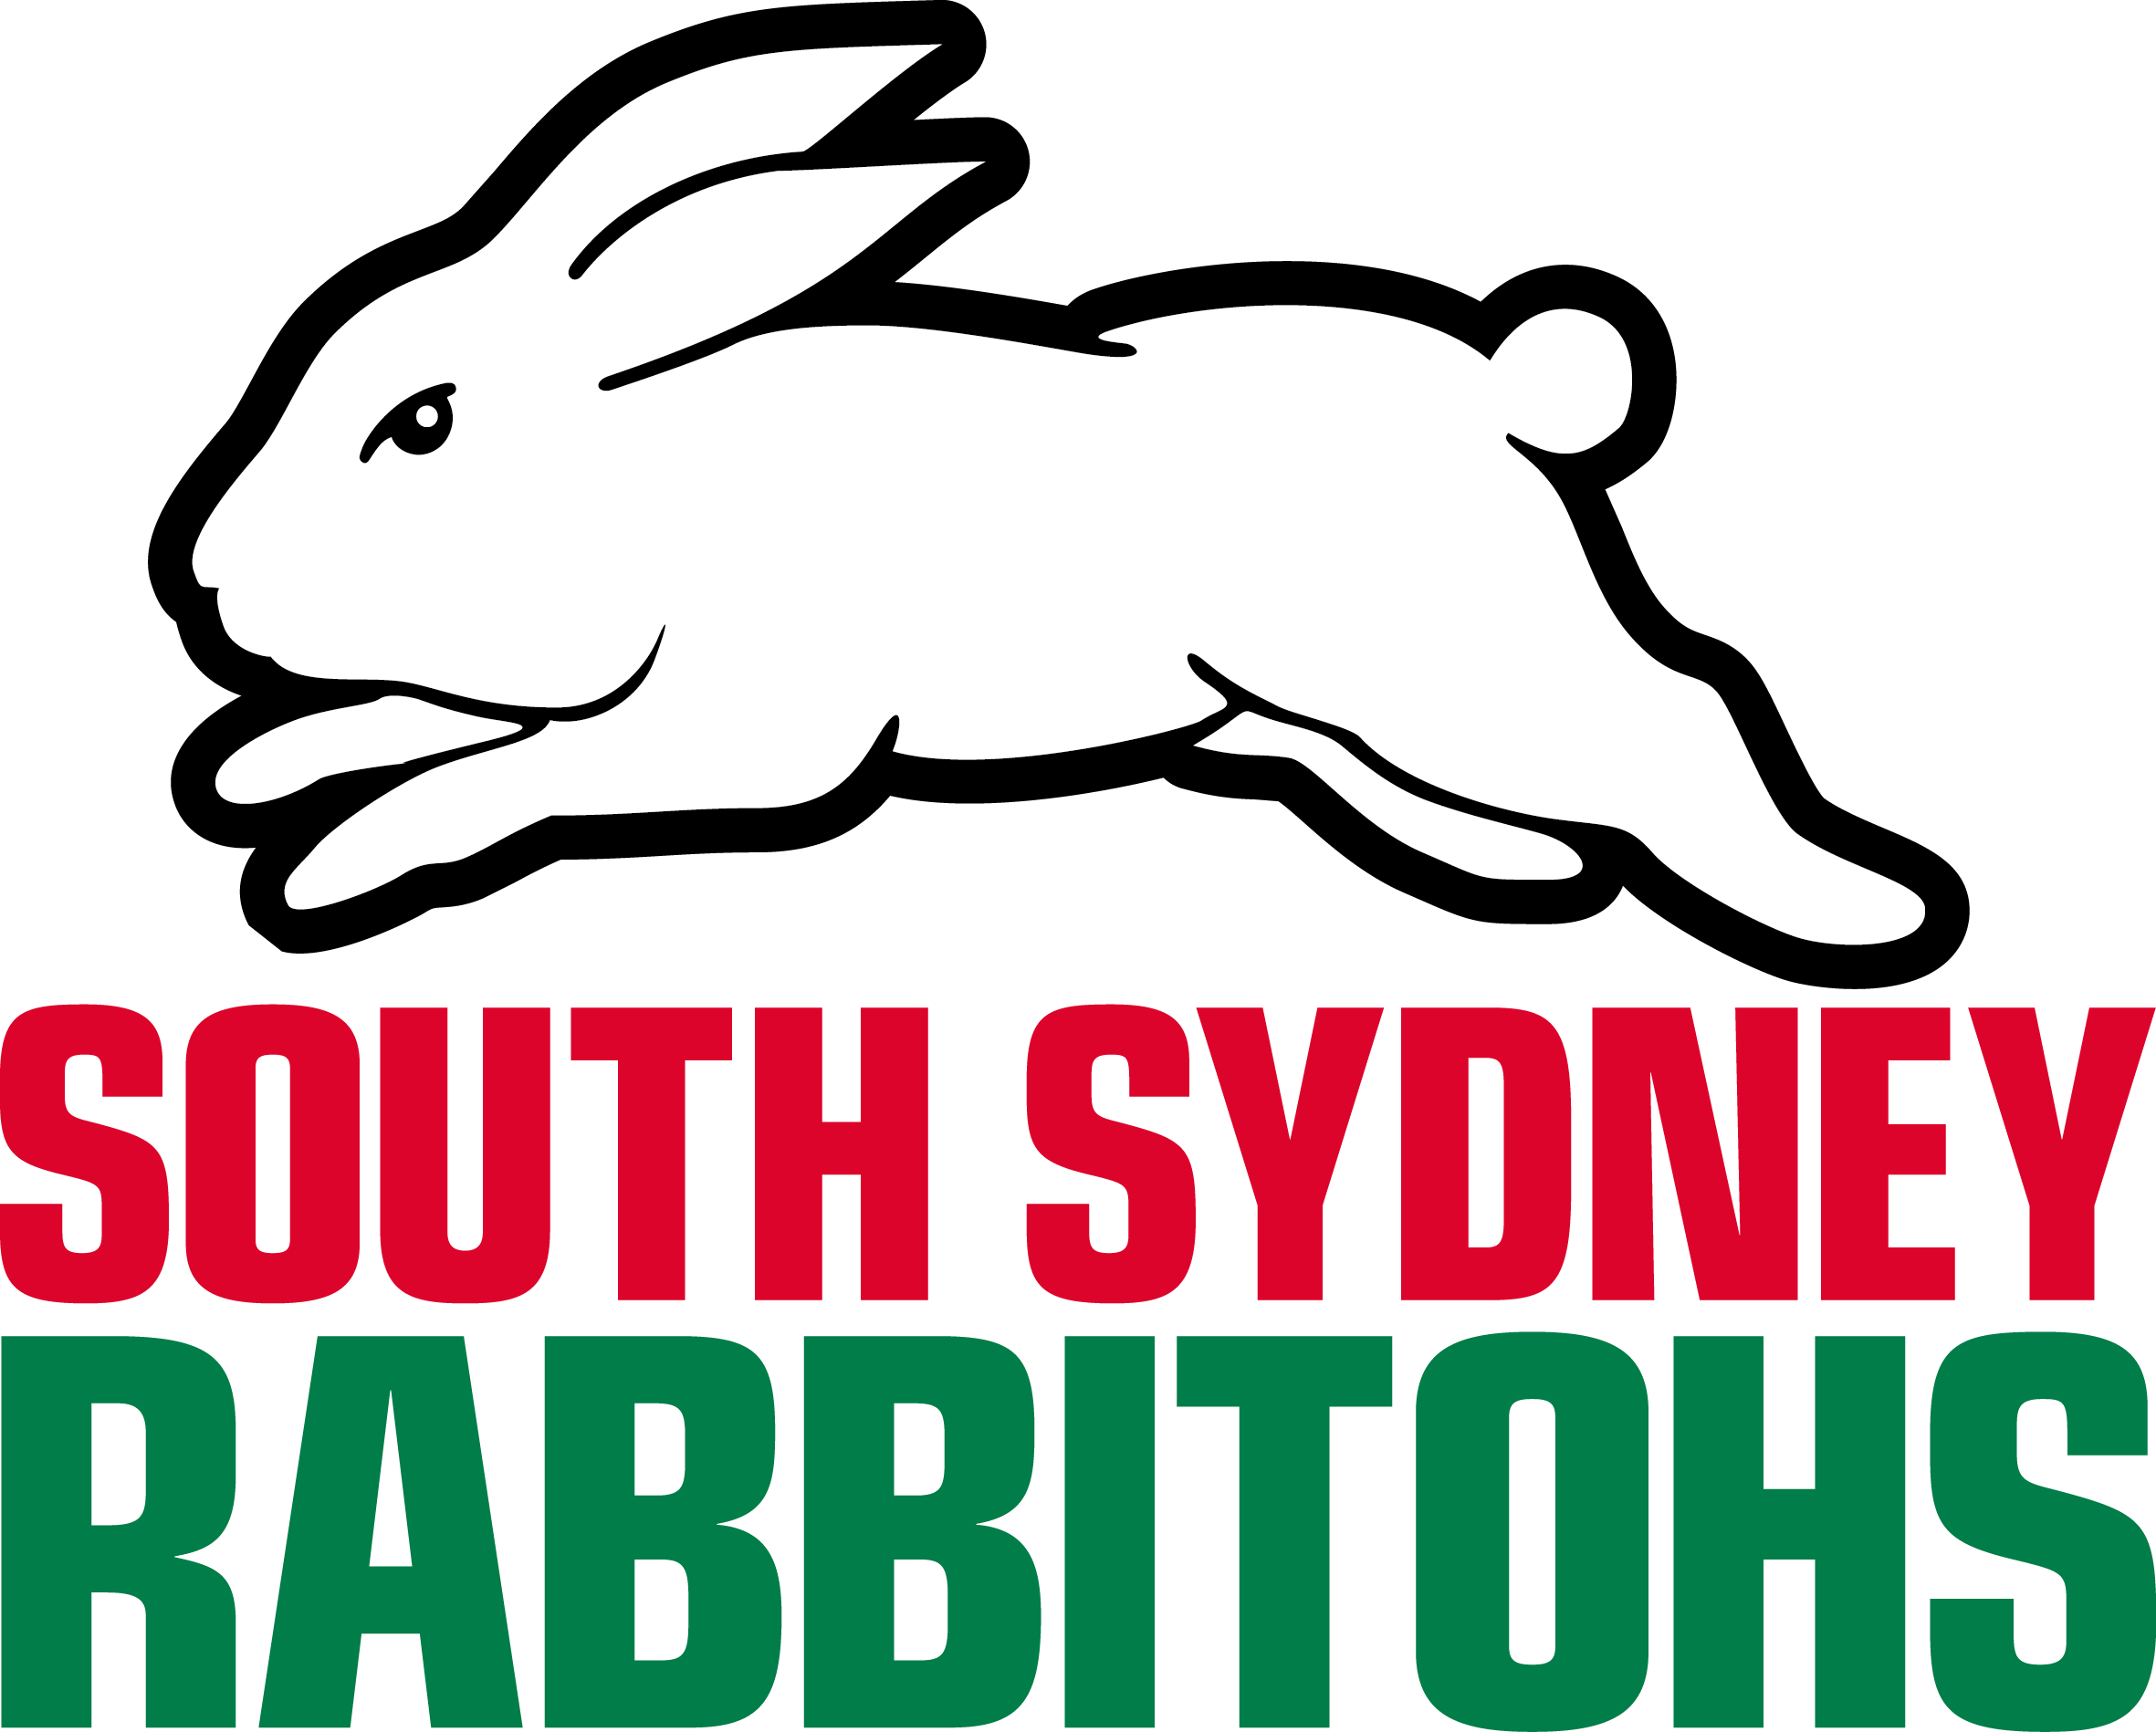 rabbitohs - photo #20